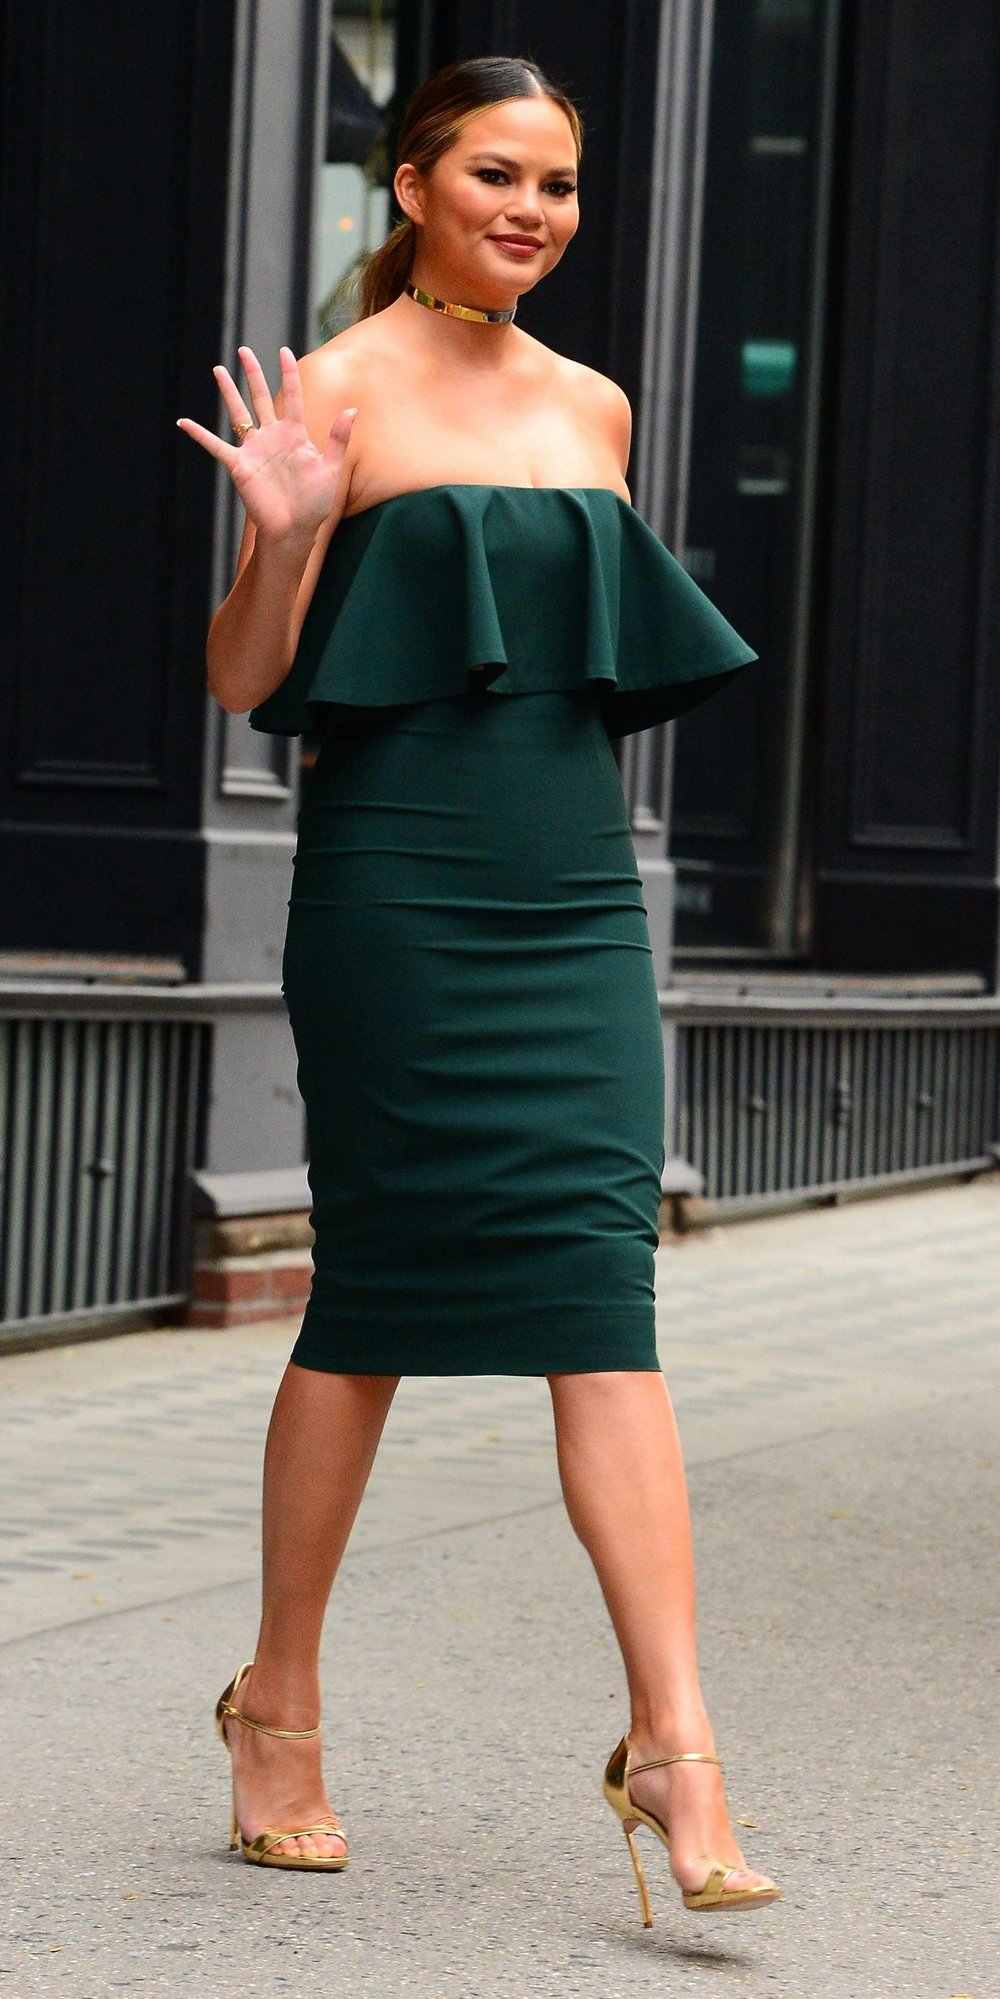 what-to-wear-for-a-winter-wedding-guest-outfit-green-dark-dress-bodycon-hairr-choker-necklace-pony-chrissyteigen-tan-shoe-sandalh-gold-strapless-dinner.jpg